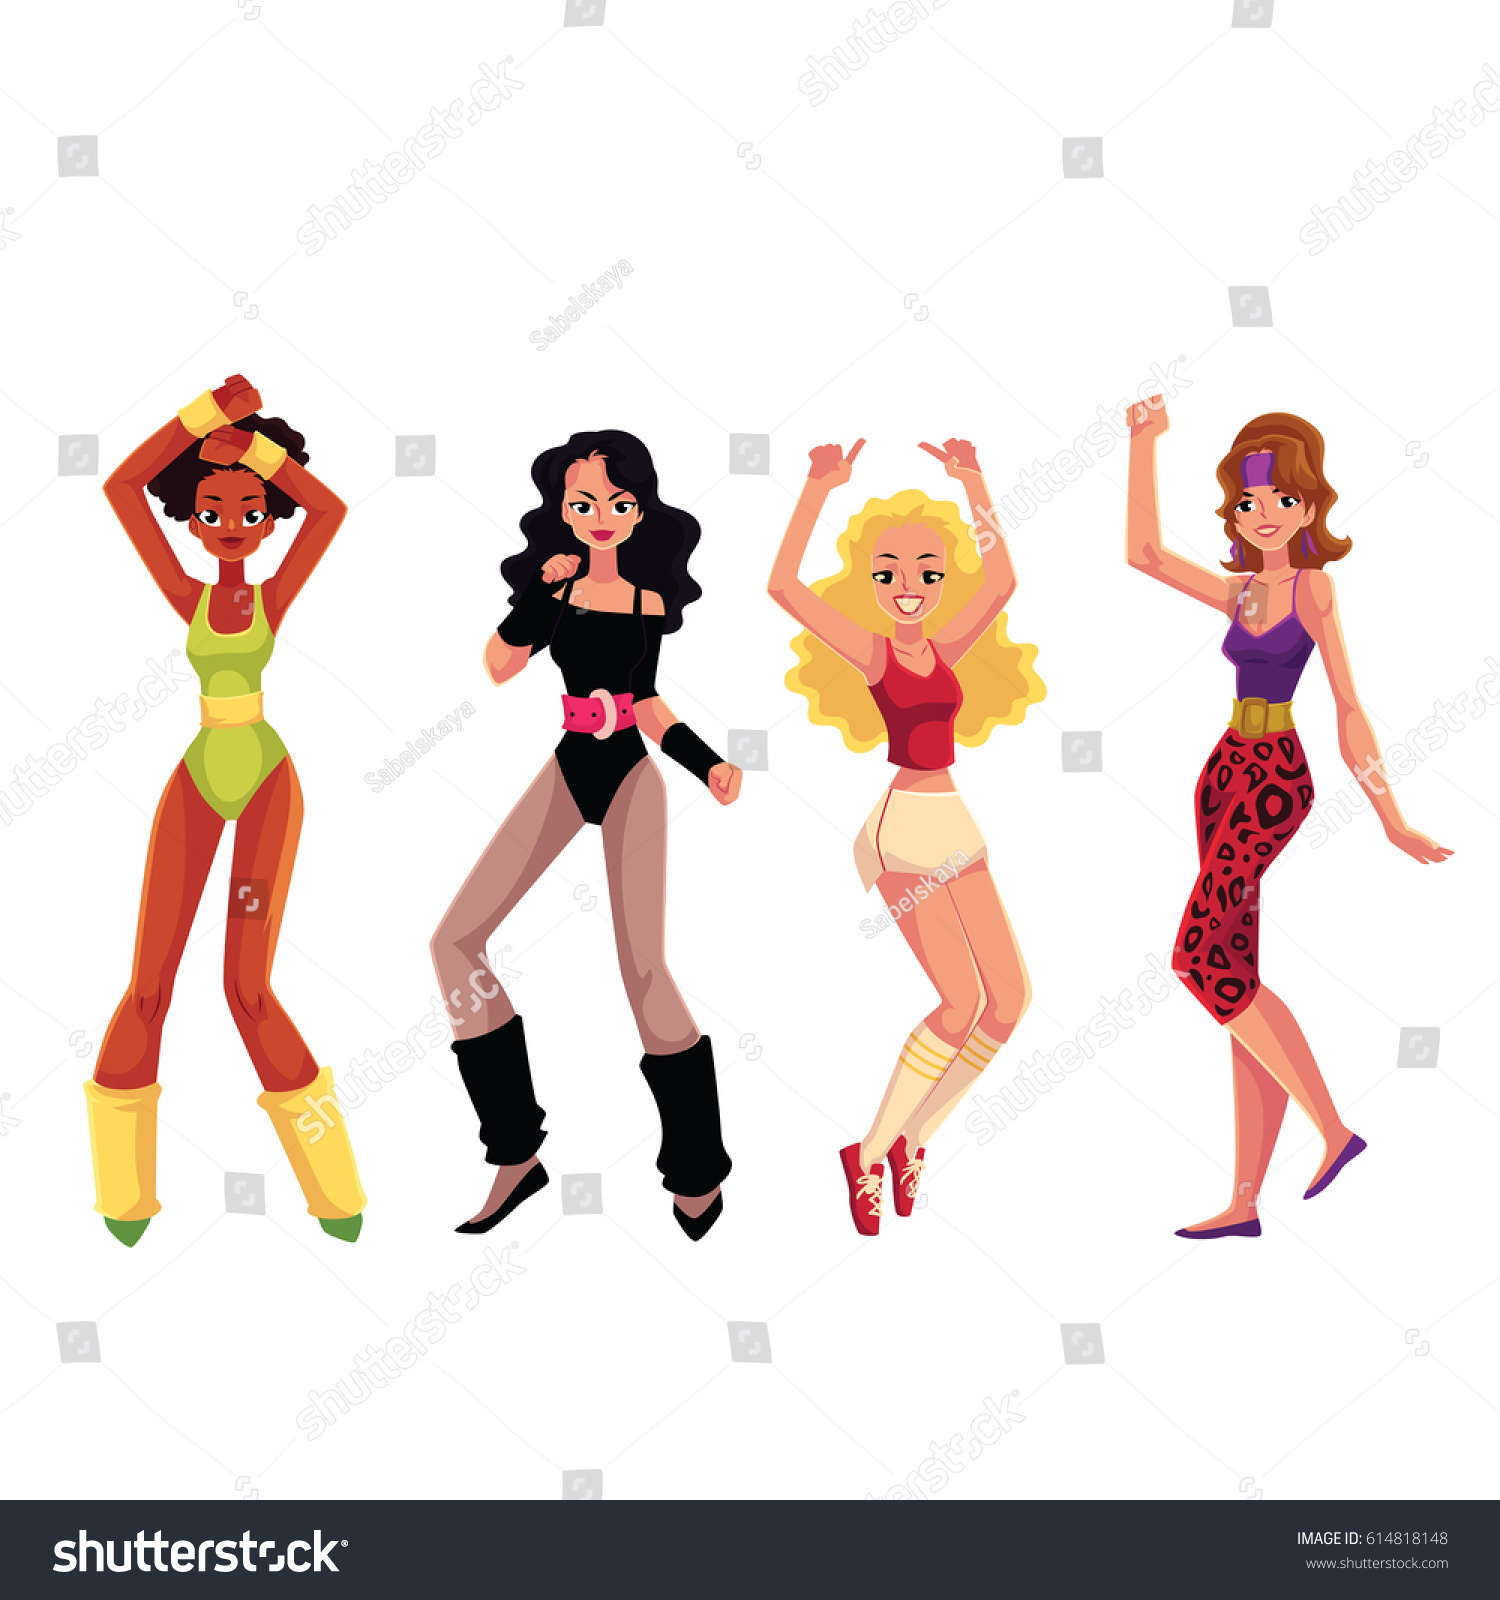 Girls Women 80 S Style Aerobics Outfit Stock Vector Royalty Free